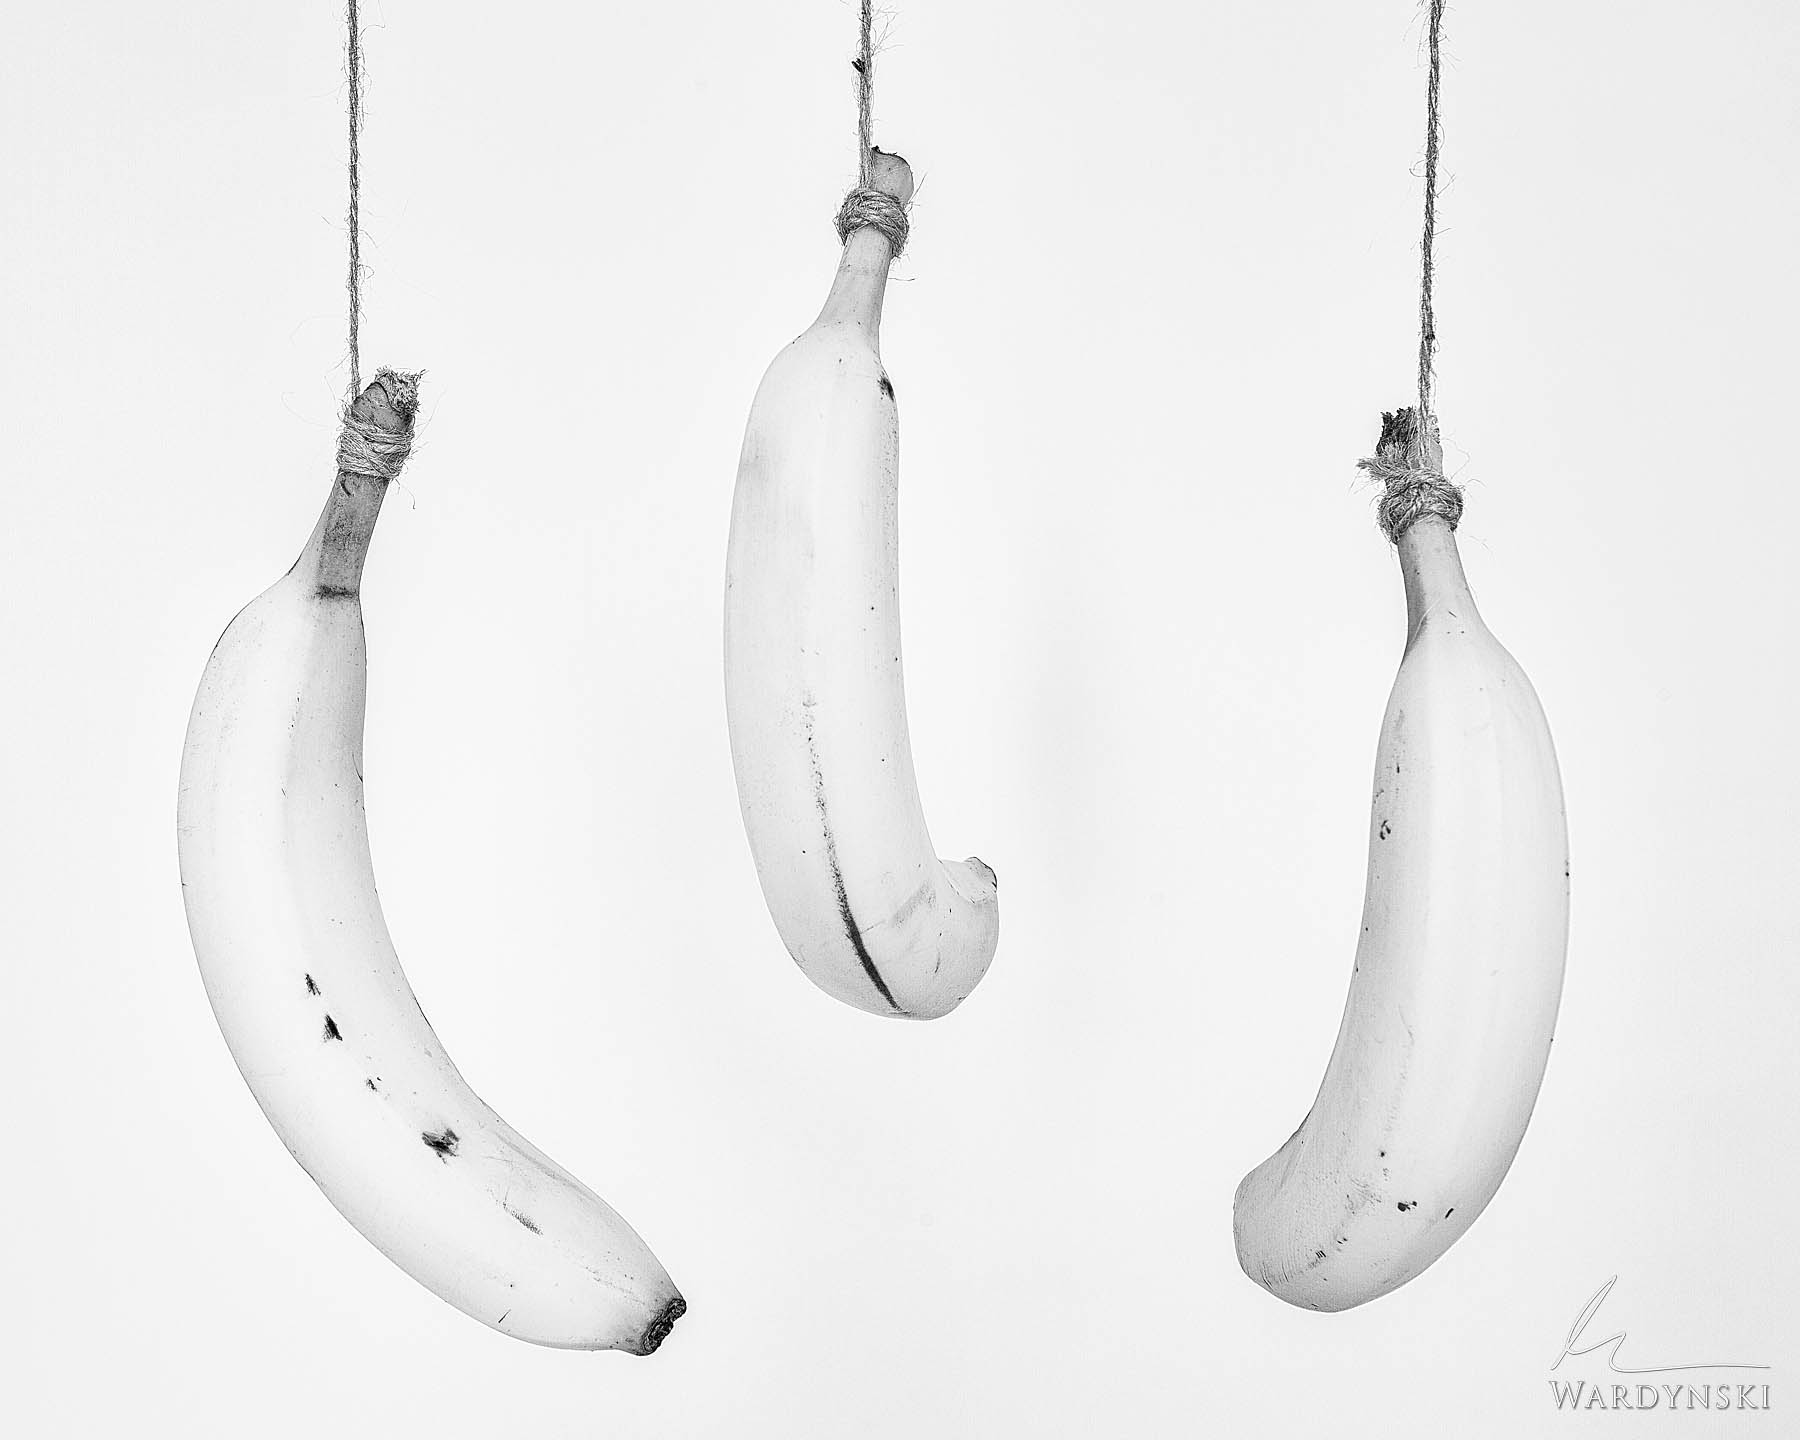 Black and White Fine Art Print | Limited Edition of 75 This still life photograph of three hanging bananas will make a wonderful...